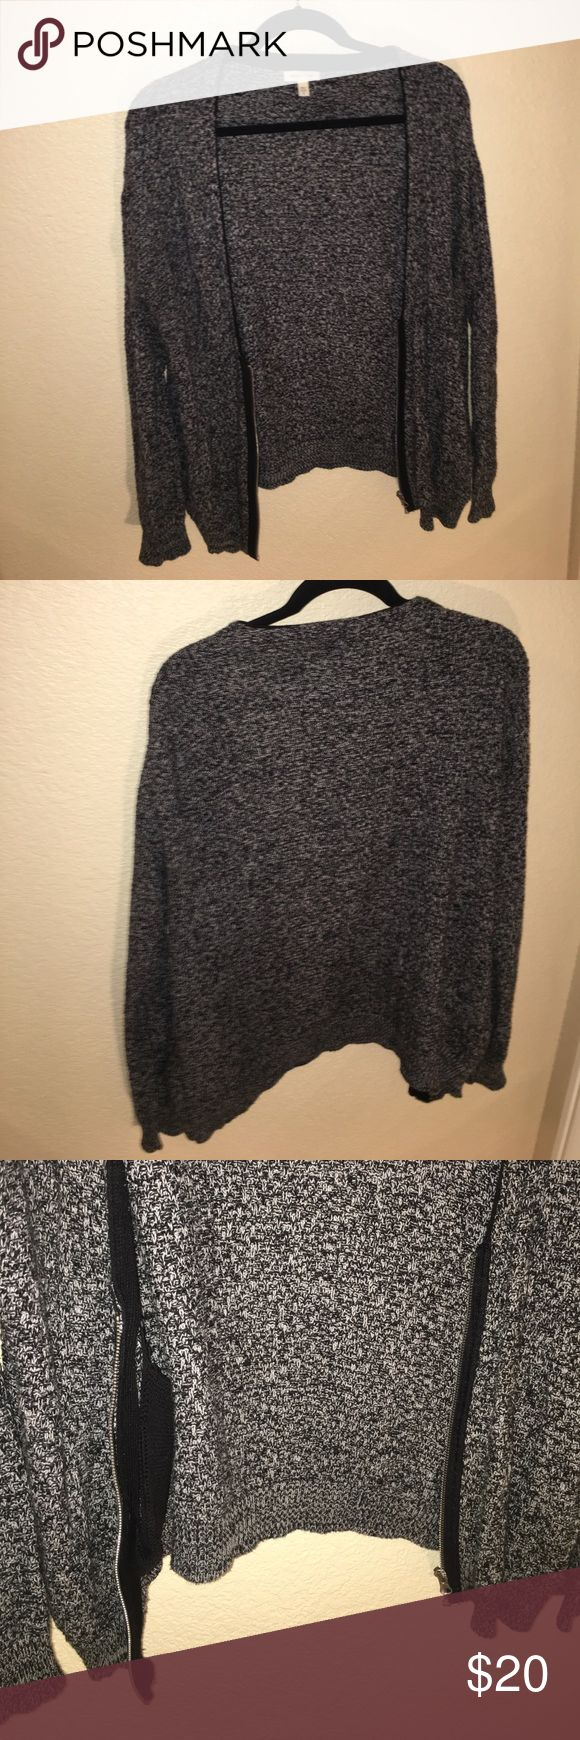 Salt n Pepper Urban Outifitters sweater zip up Soft and warm jacket. Zips up. Good condition no damage. Purchased from Urban Outfitters silence + noise Jackets & Coats